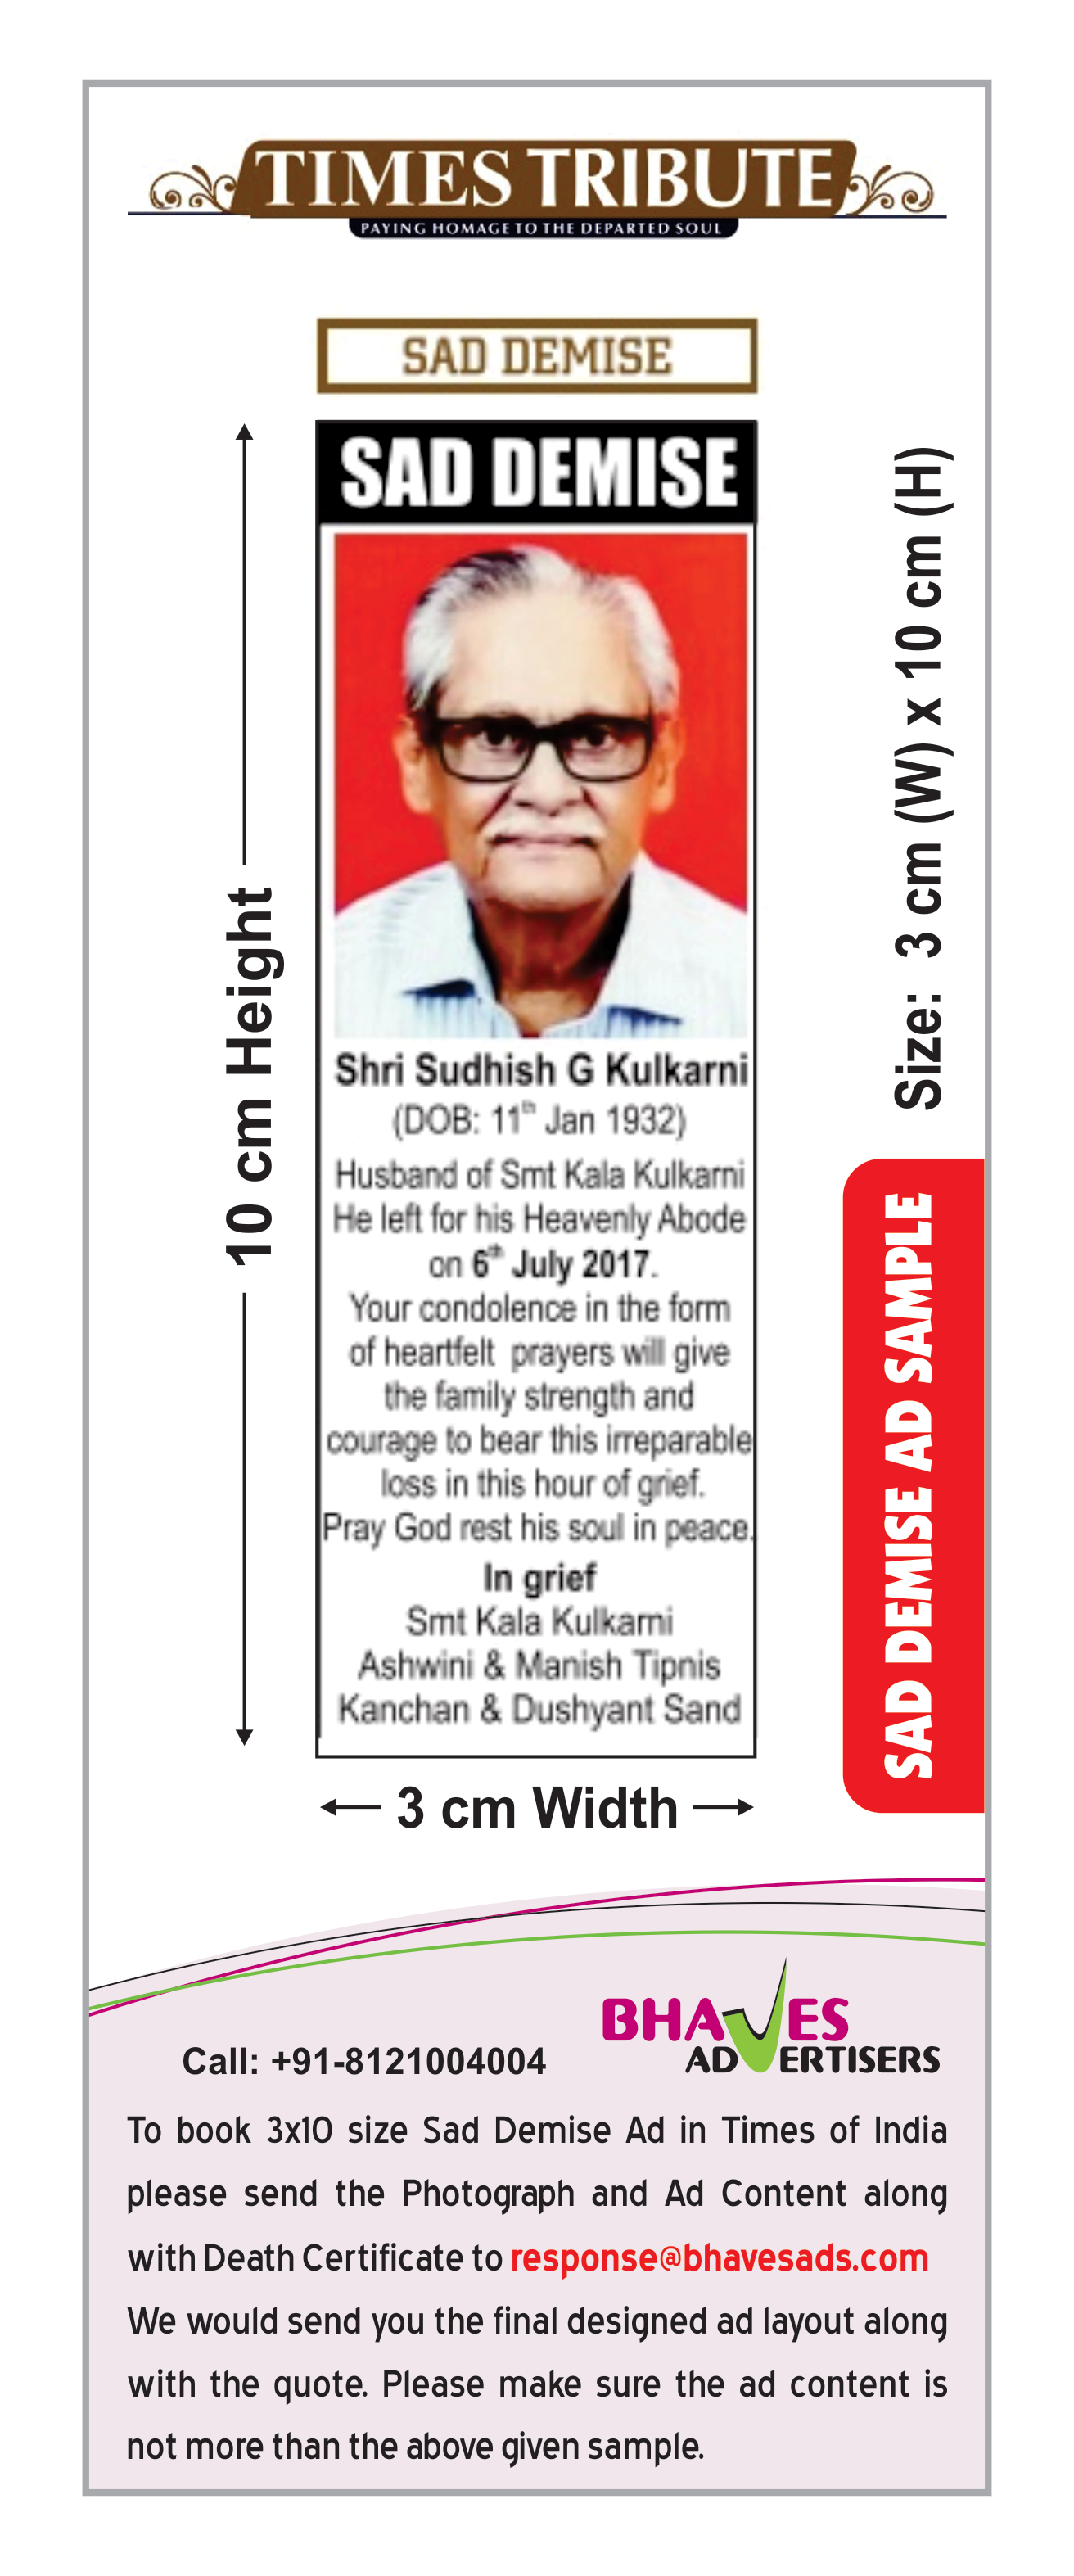 Times of India Obituary Ad Rate Card for Mumbai Newspaper